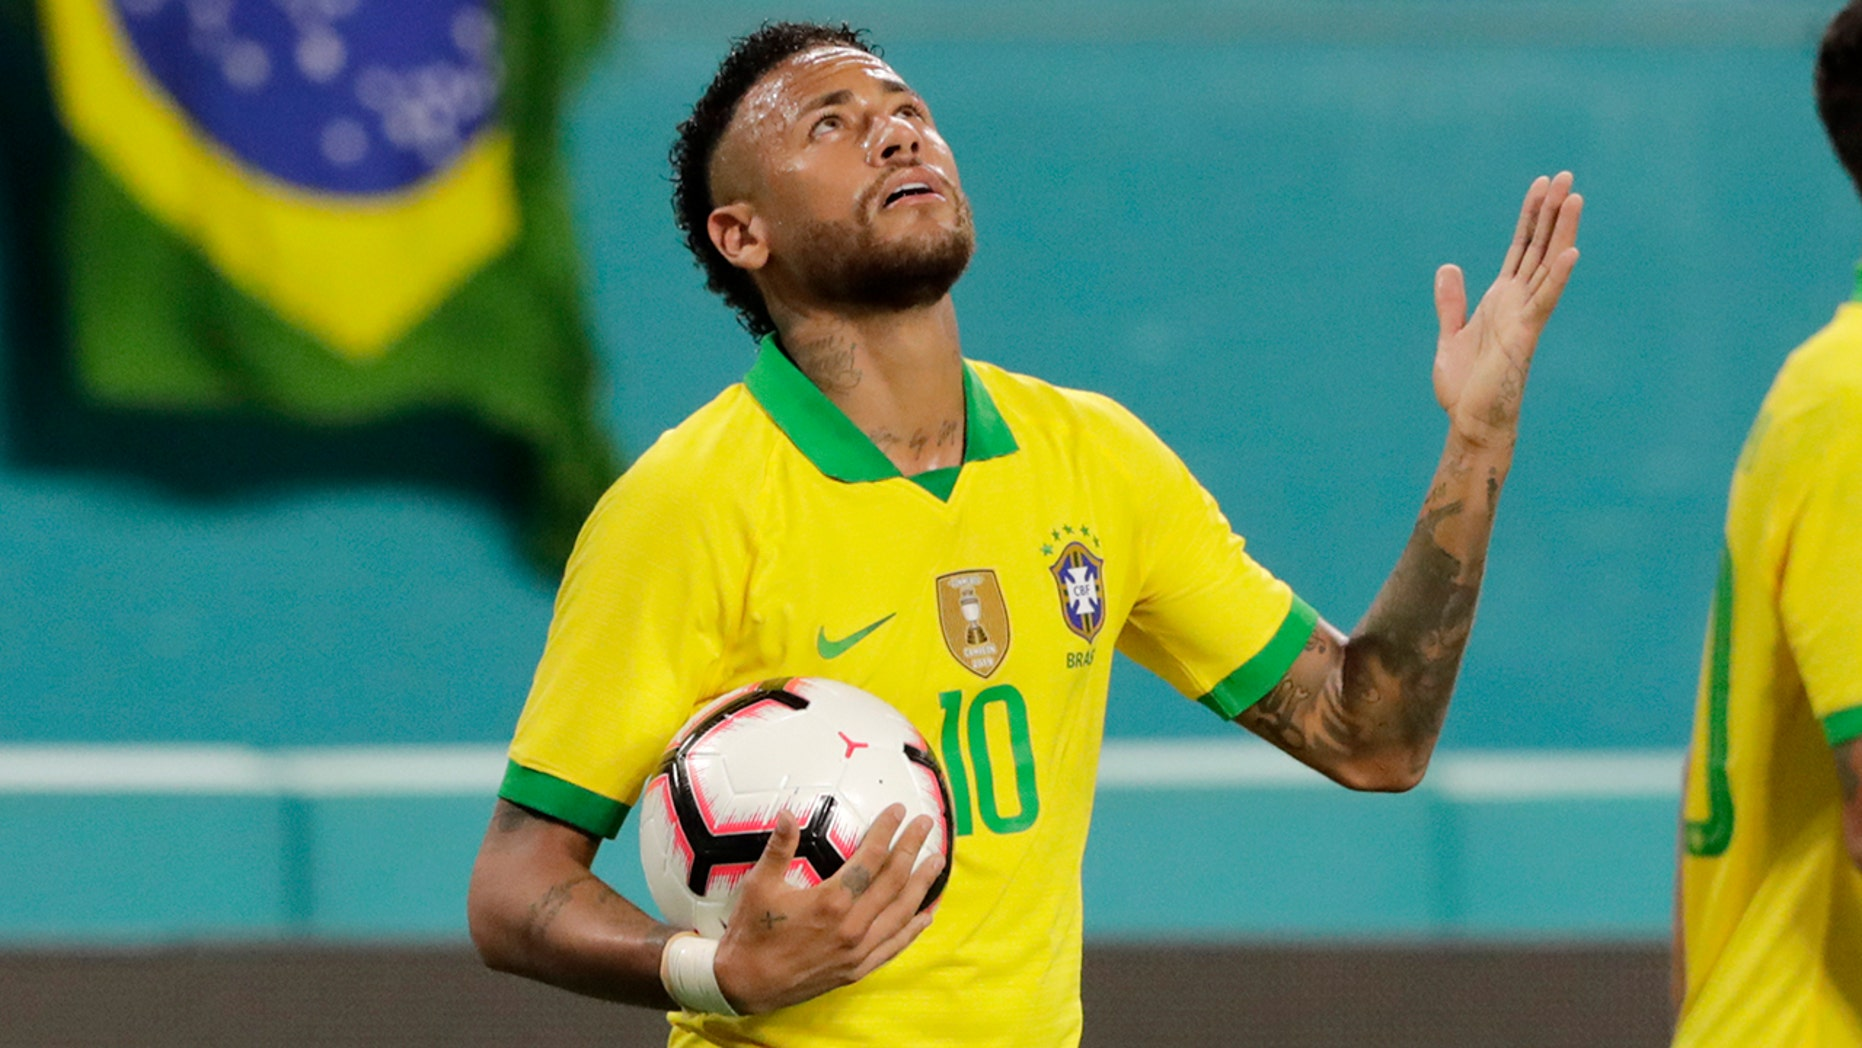 """Brazilian striker Neymar reacts after scoring in Miami Gardens, Florida in the second half of a friendly against Colombia on Friday, September 6, 201<div class=""""e3lan e3lan-in-post1""""><script async src=""""//pagead2.googlesyndication.com/pagead/js/adsbygoogle.js""""></script> <!-- Text_Display_Responsive --> <ins class=""""adsbygoogle""""      style=""""display:block""""      data-ad-client=""""ca-pub-6192903739091894""""      data-ad-slot=""""3136787391""""      data-ad-format=""""auto""""      data-full-width-responsive=""""true""""></ins> <script> (adsbygoogle = window.adsbygoogle 